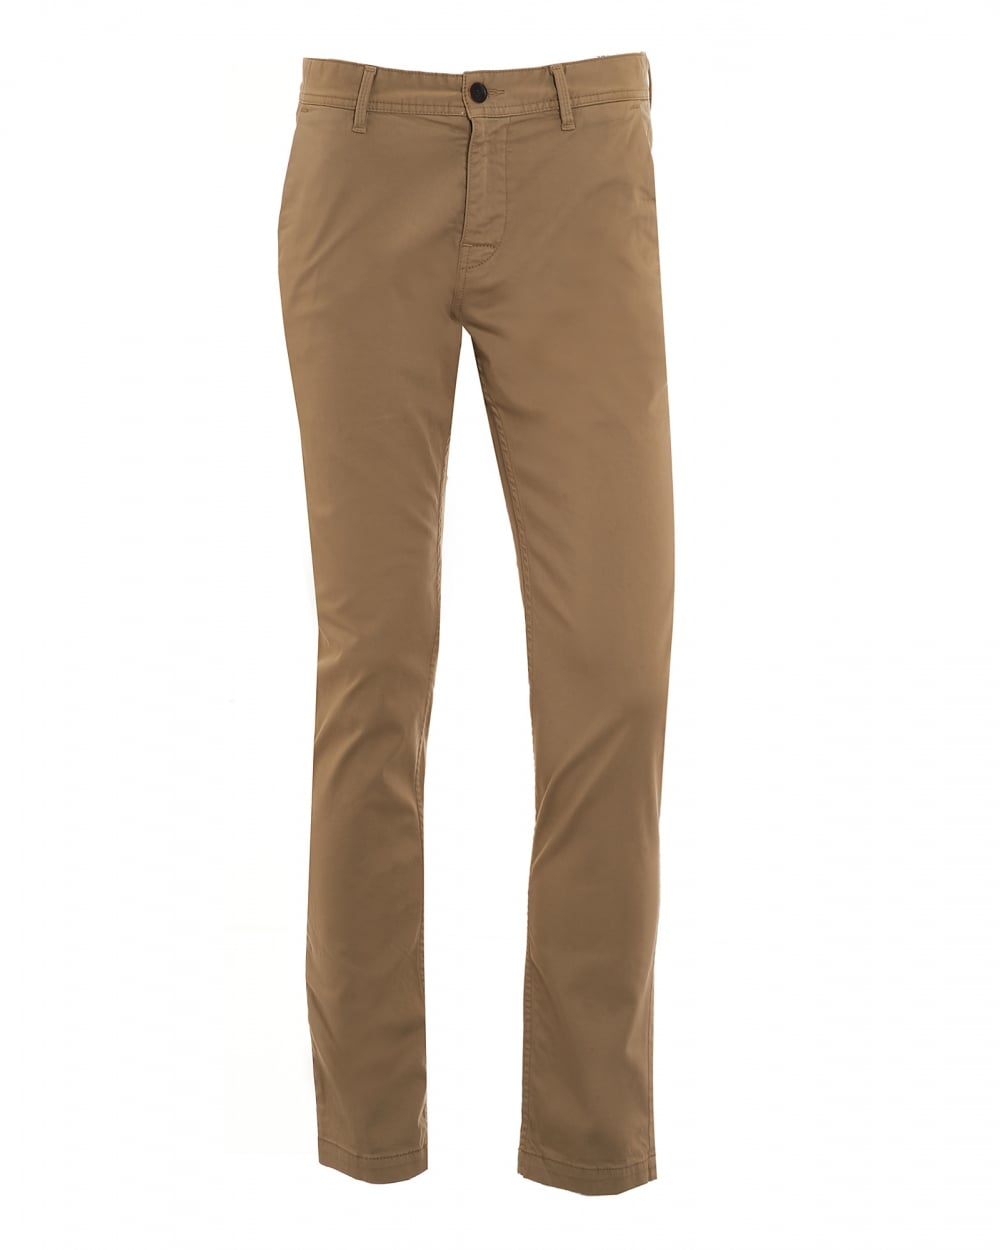 BOSS Casual Mens Schino-Regular D Trouser Boss Orange by Hugo Boss High Quality For Sale Sale Online Shopping Buy Cheap Find Great upzR9